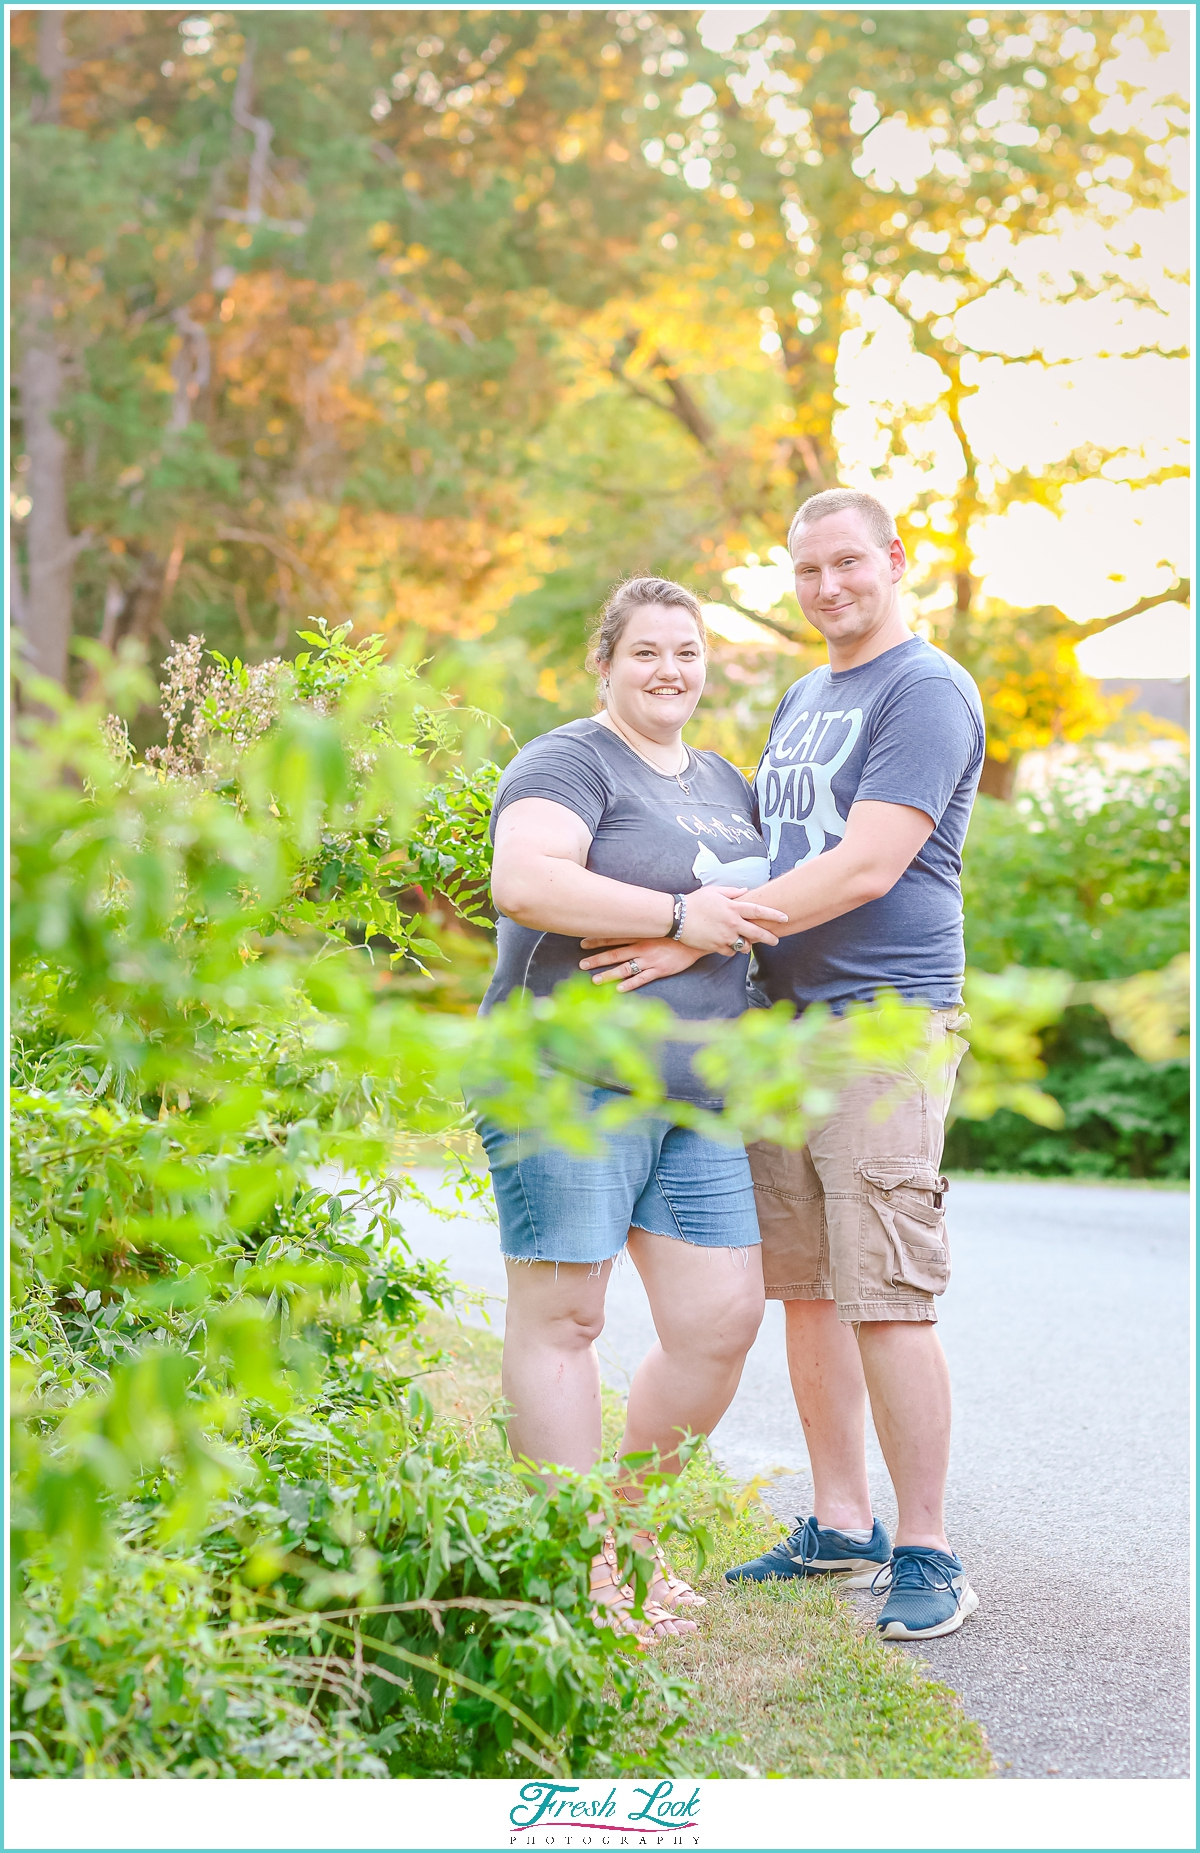 Summer engagement photoshoot